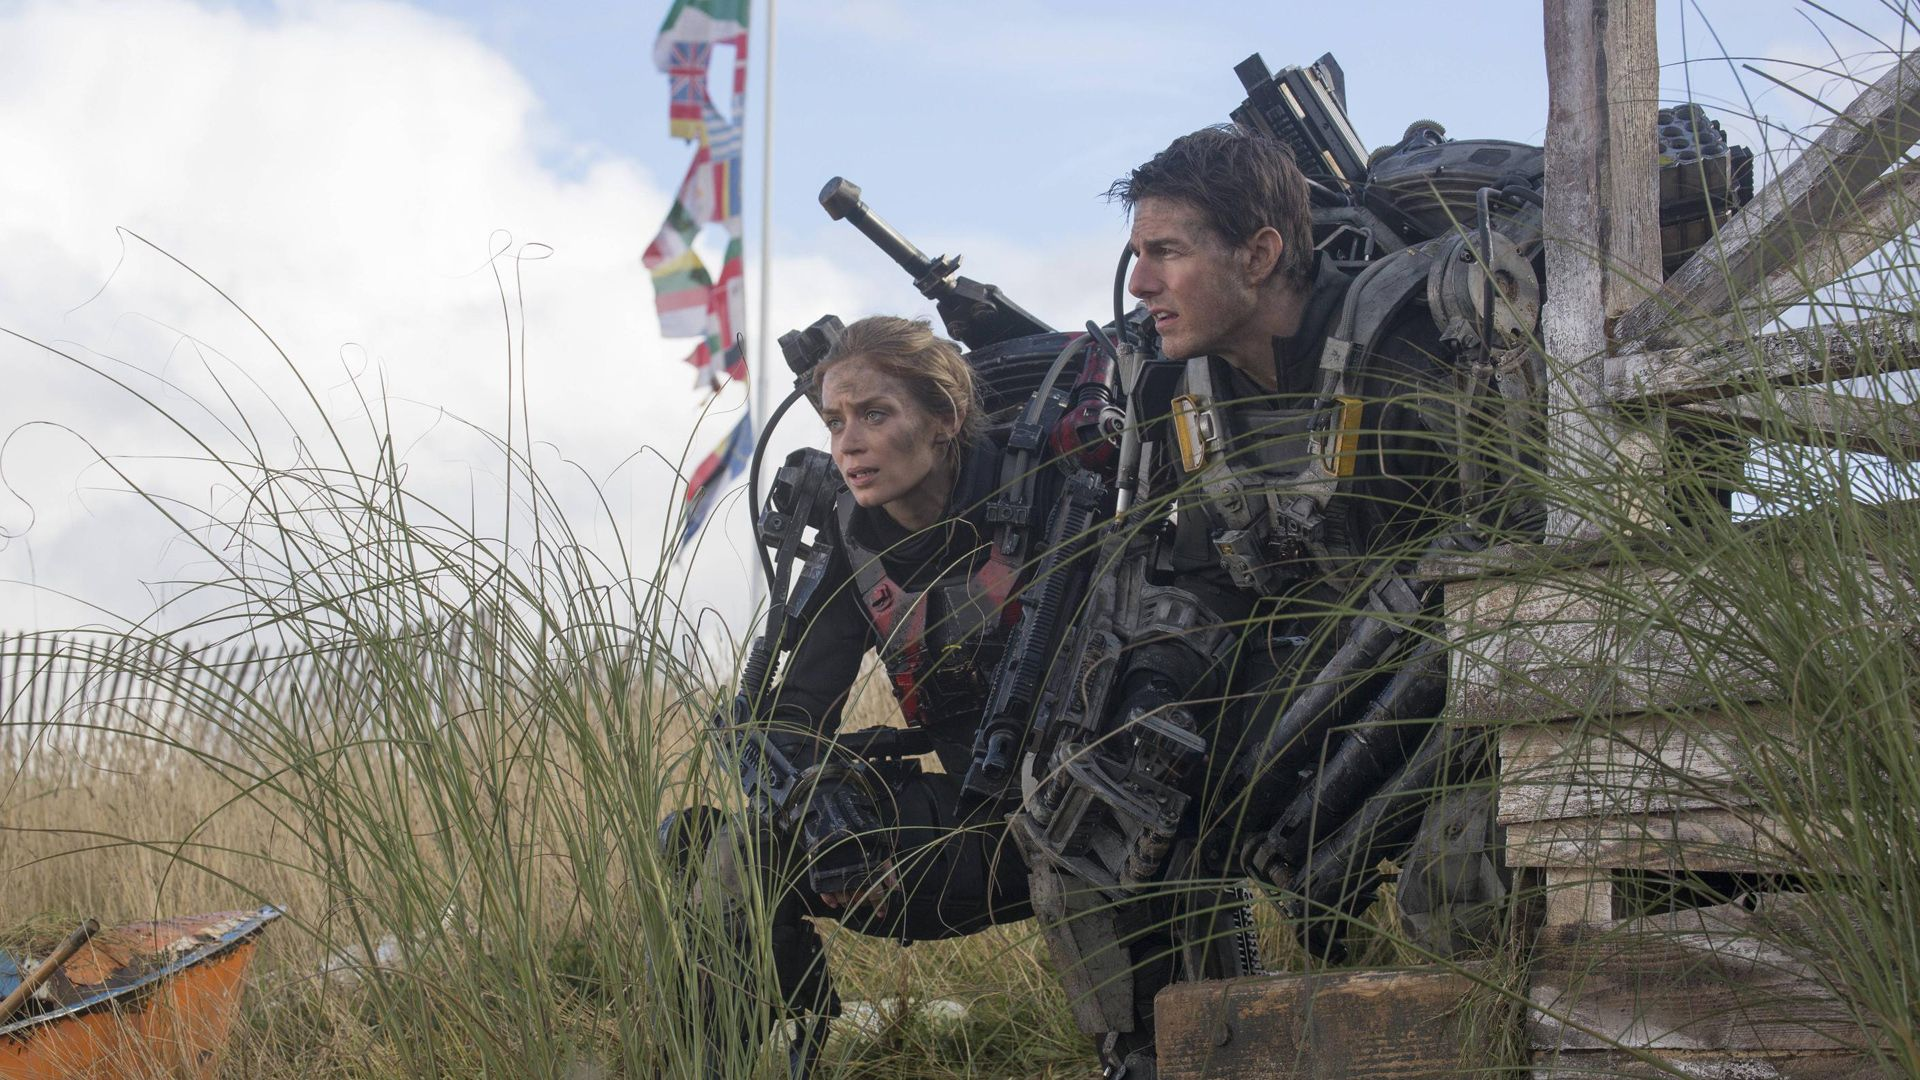 Edge Of Tomorrow 2 Release Date Plot Cast